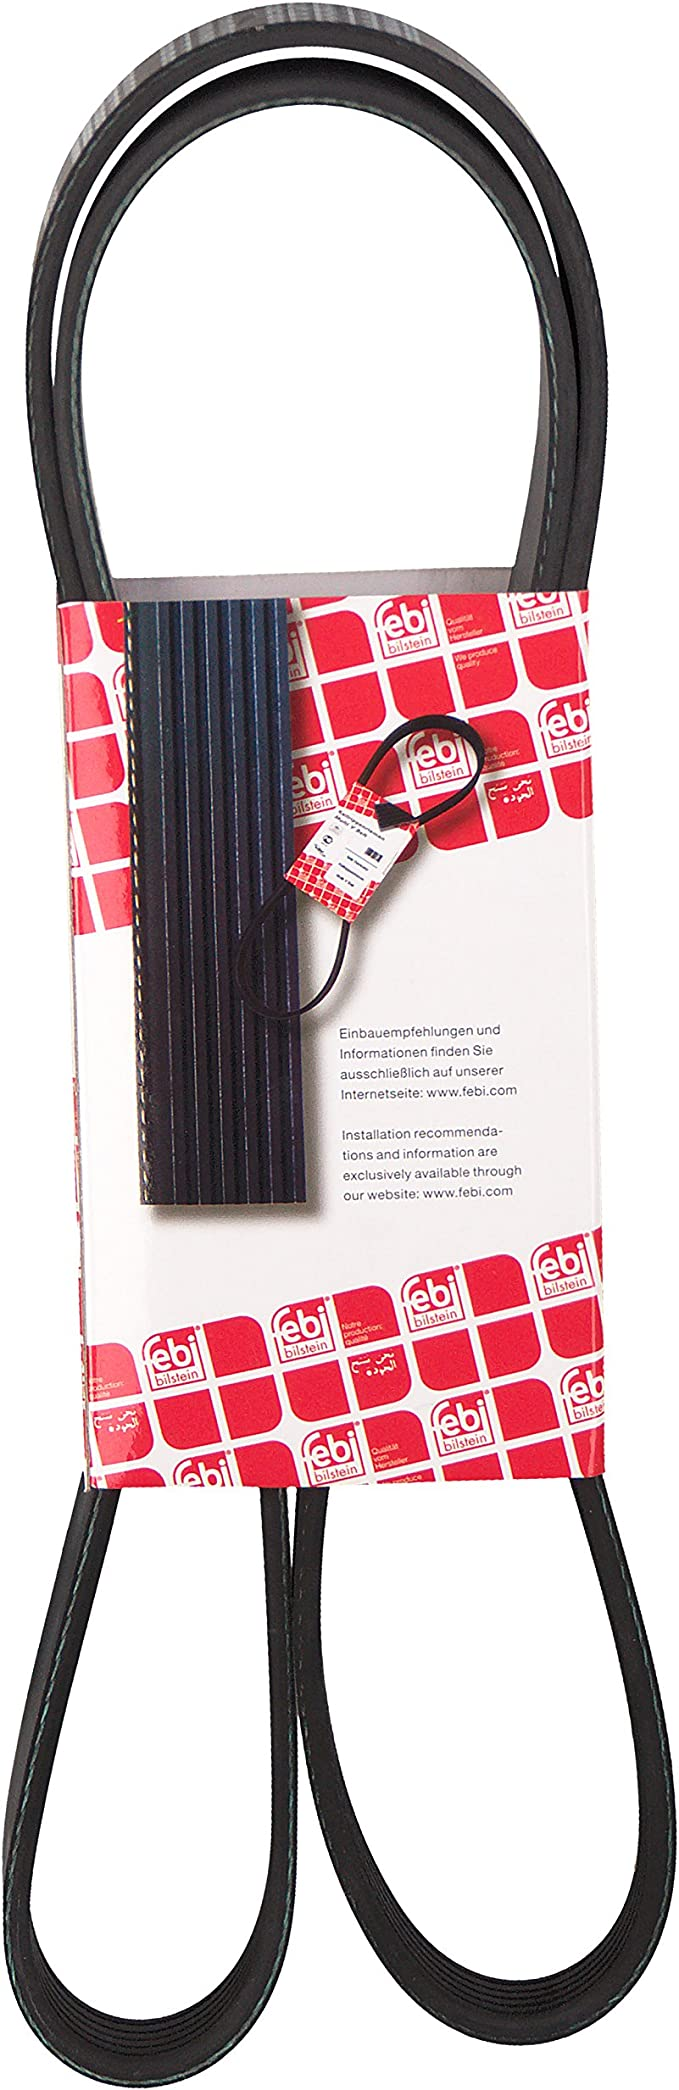 45mm ID 4 Metre Length 2 PLY Black Neoprene Ducting AutoSiliconeHoses